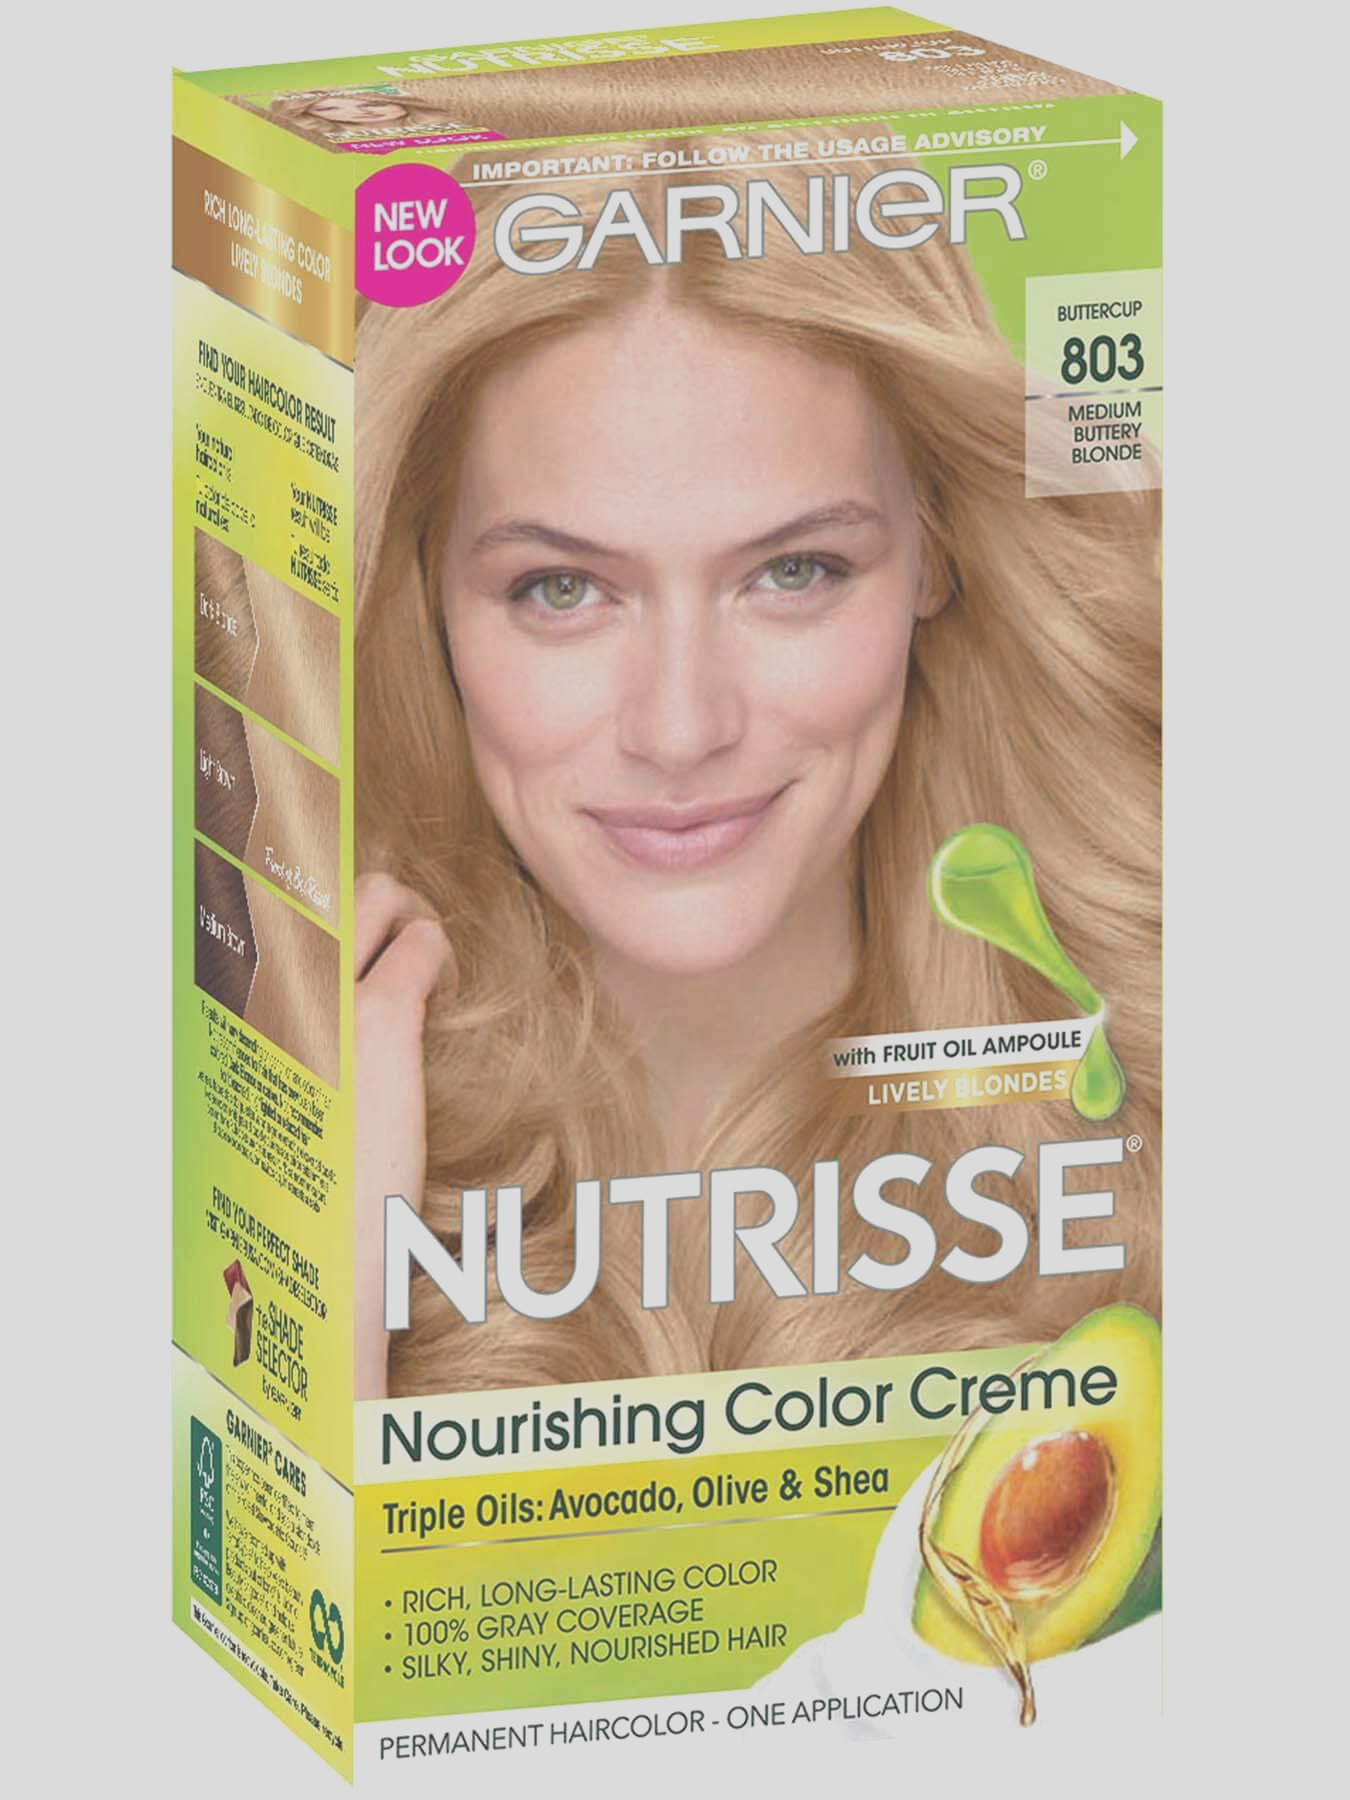 nourishing color creme 803 medium buttery blonde